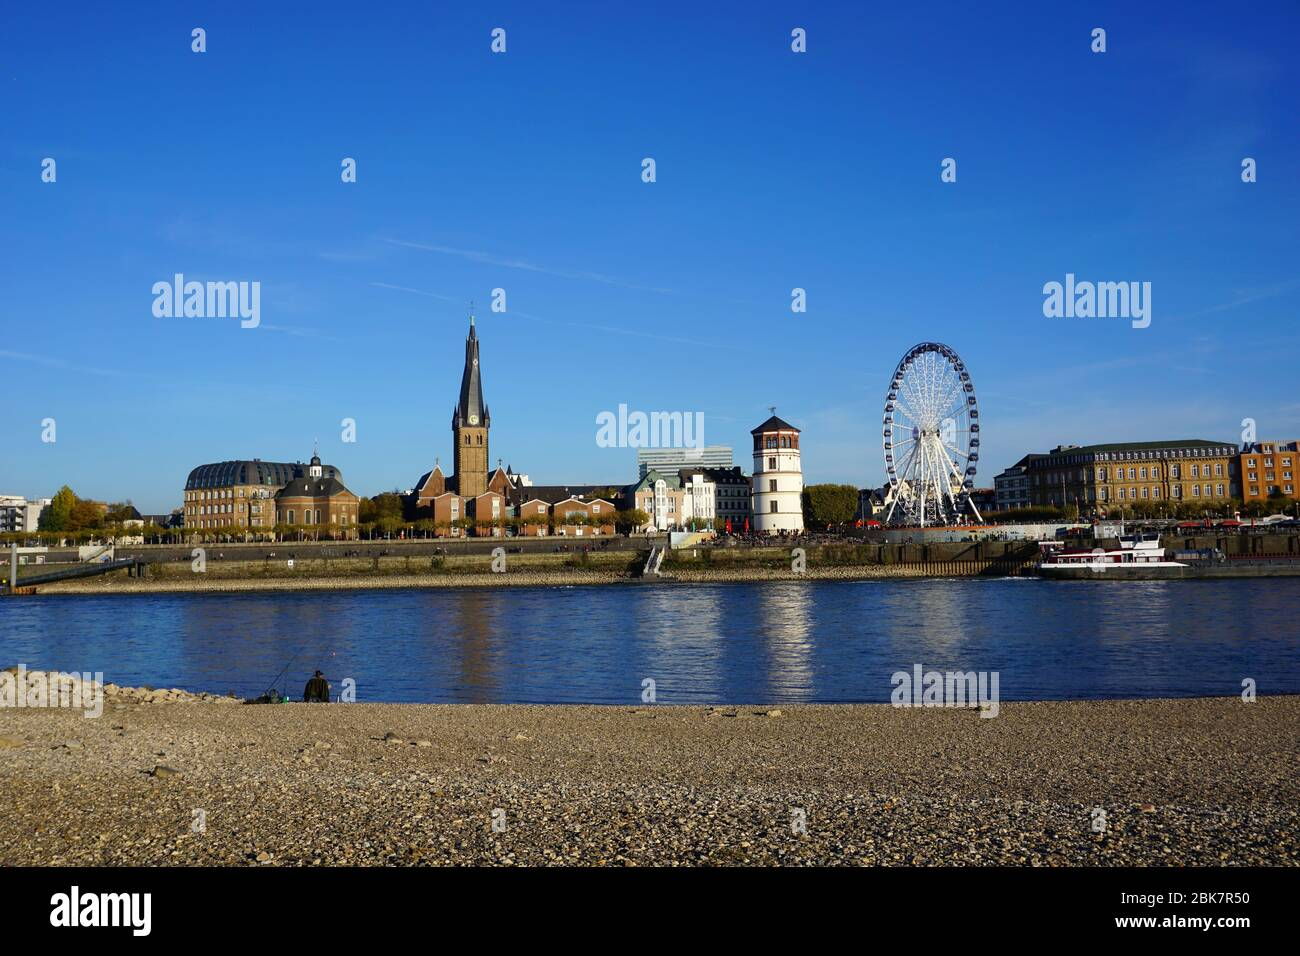 Panoramic view across Rhine river from the Düsseldorf district of Oberkassel, with white castle tower and Ferris wheel. Late afternoon sun, blue sky. Stock Photo